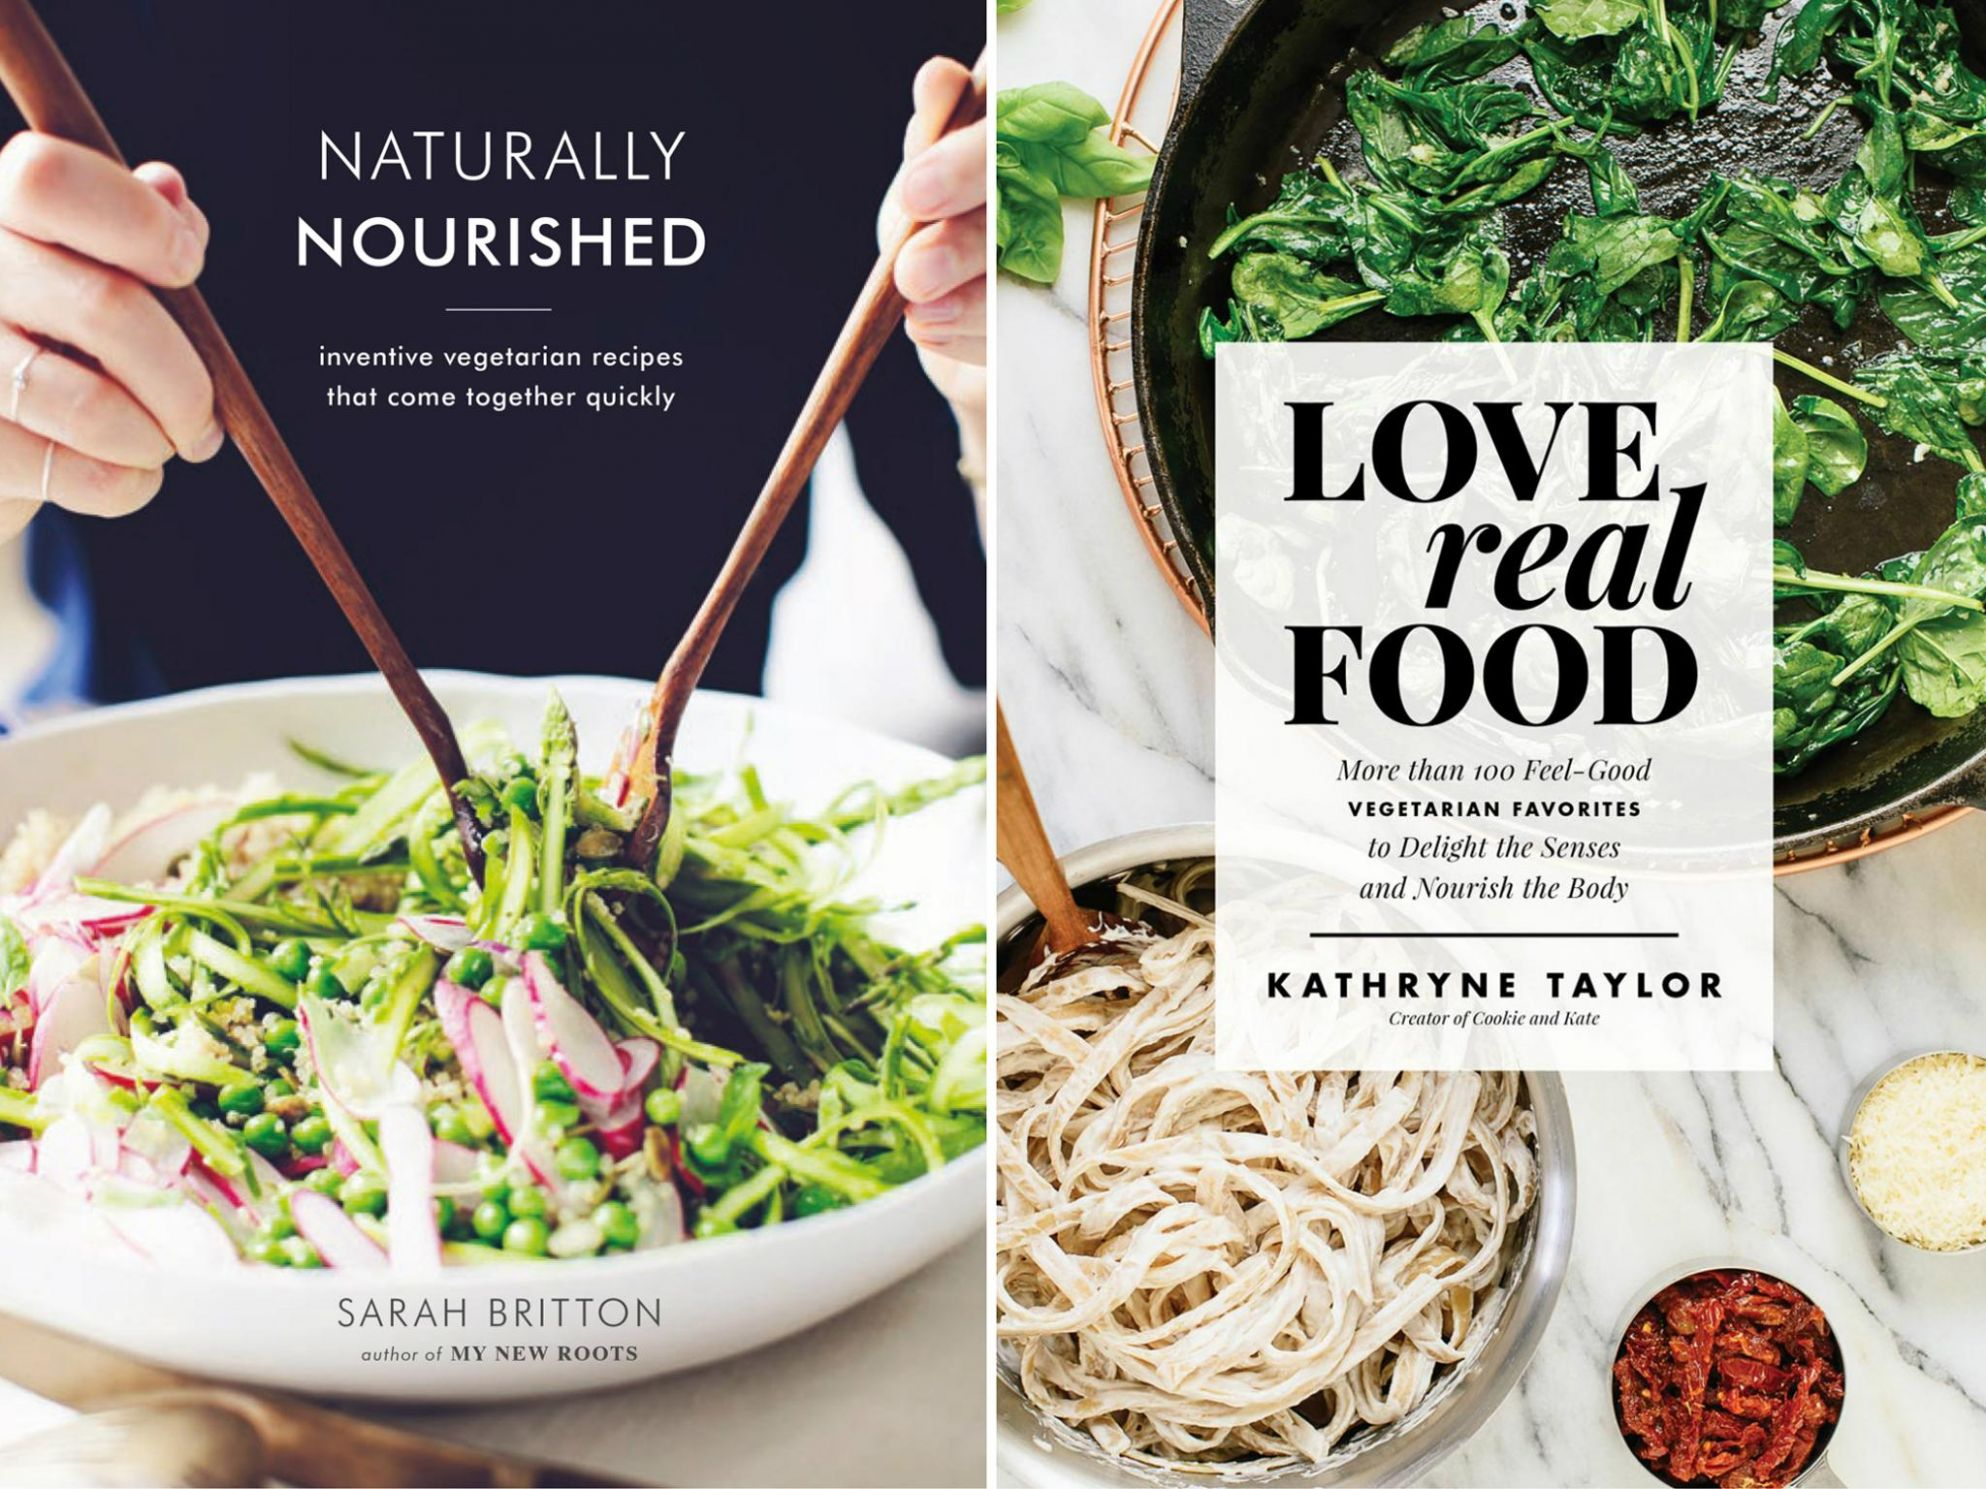 11 best vegetarian cookbooks | The Independent - Recipes Vegetarian Uk